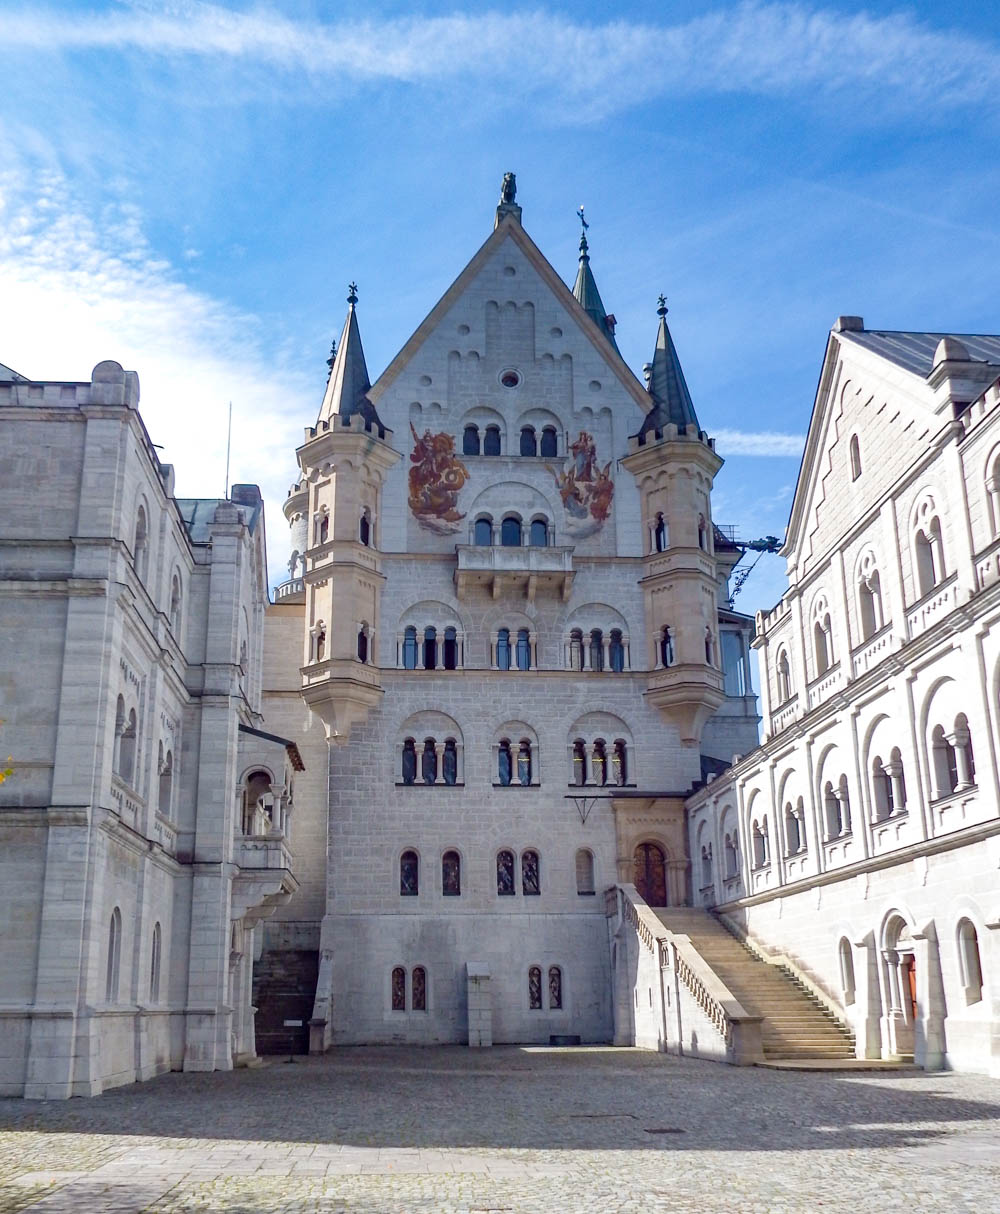 Main courtyard | 10 Crucial Tips to Visit Neuschwanstein Castle Skillfully and Worry-Free | Tips for visiting Neuschwanstein Castle in Bavaria, Germany | Neuschwanstein Castle tour tickets